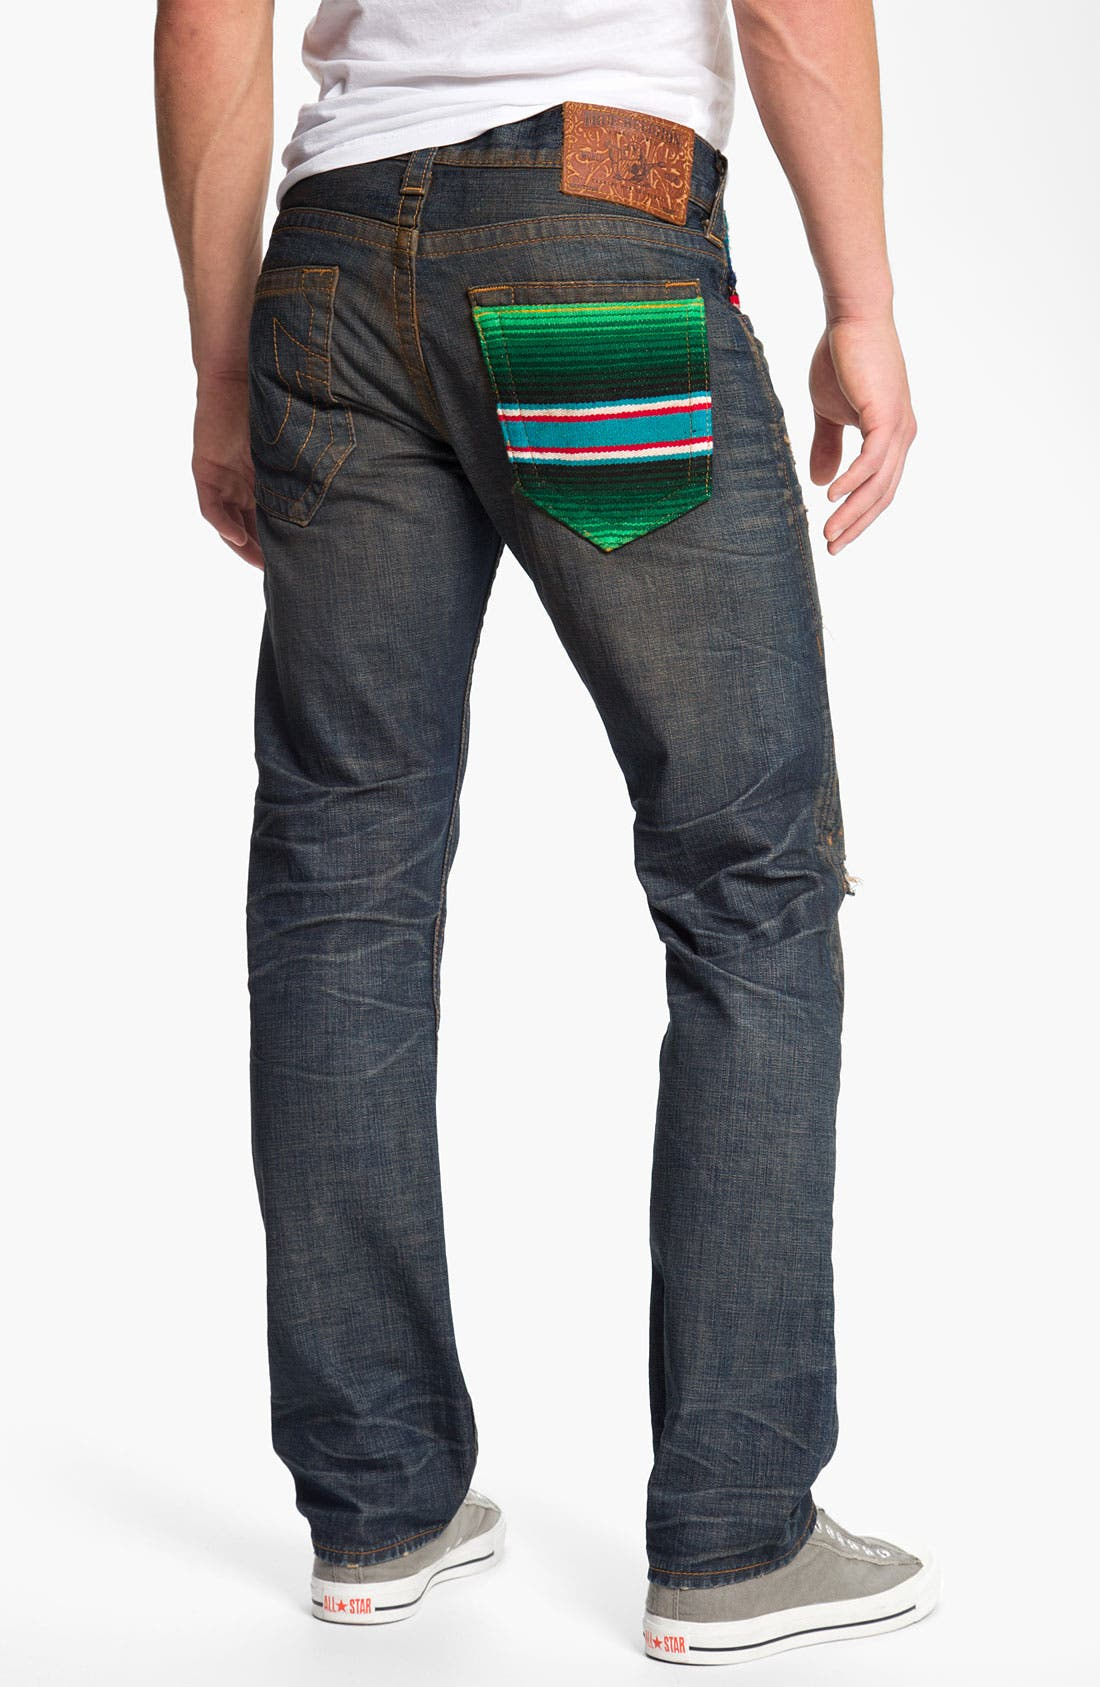 Alternate Image 1 Selected - True Religion Brand Jeans 'Geno Baja' Slim Straight Leg Jeans (Proclamation)